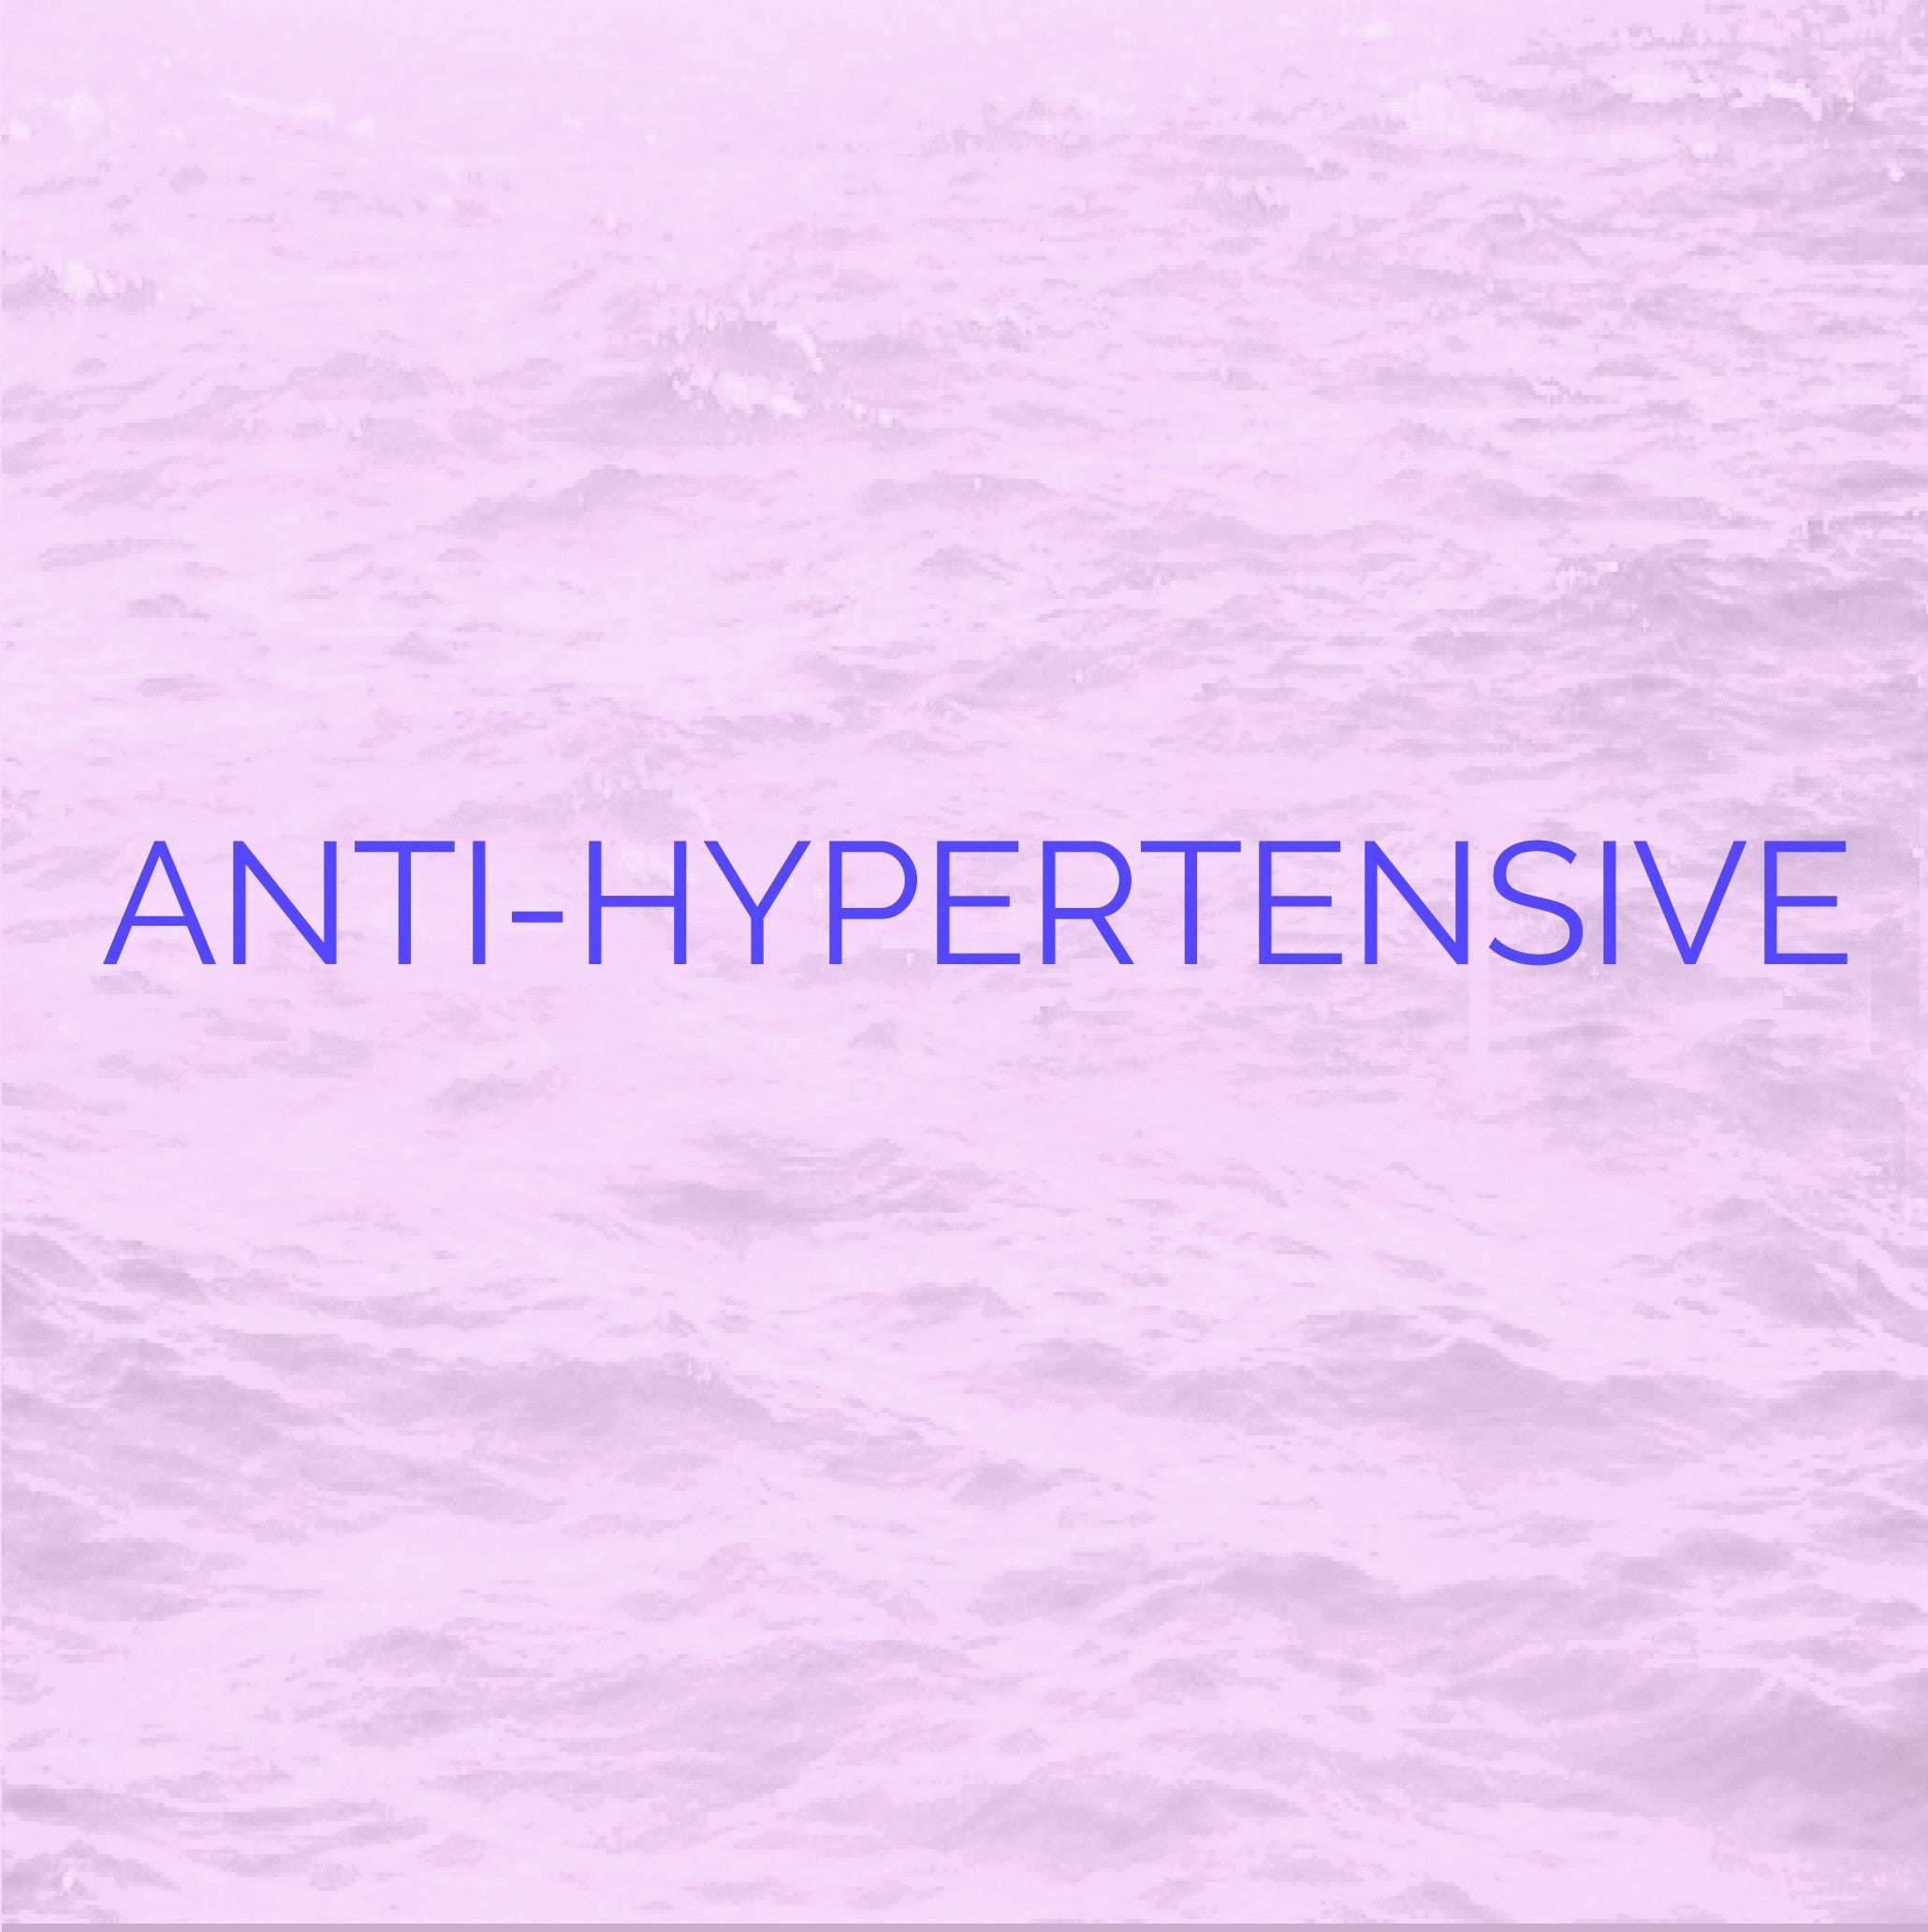 An icon representing Anti-Hypertension